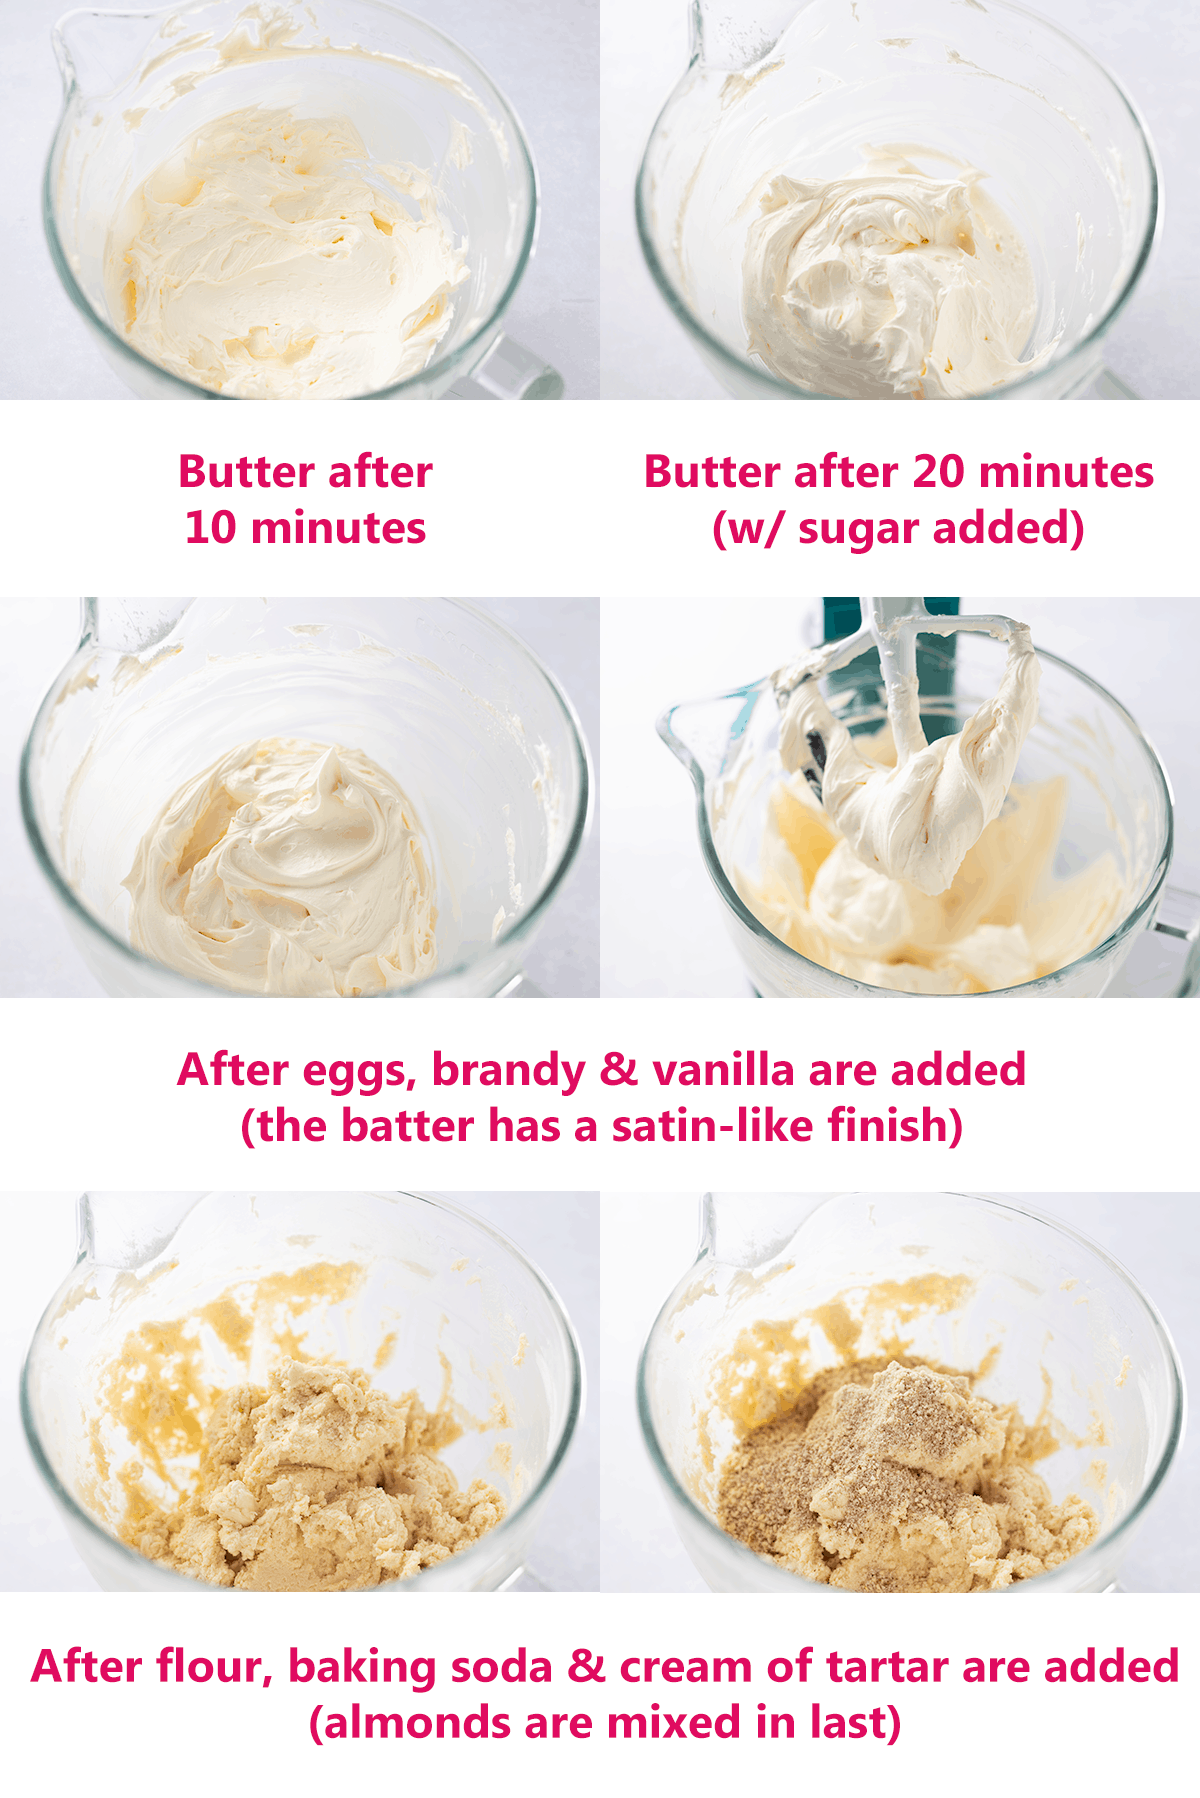 A diagram of photos and text displaying the steps of making cookies.